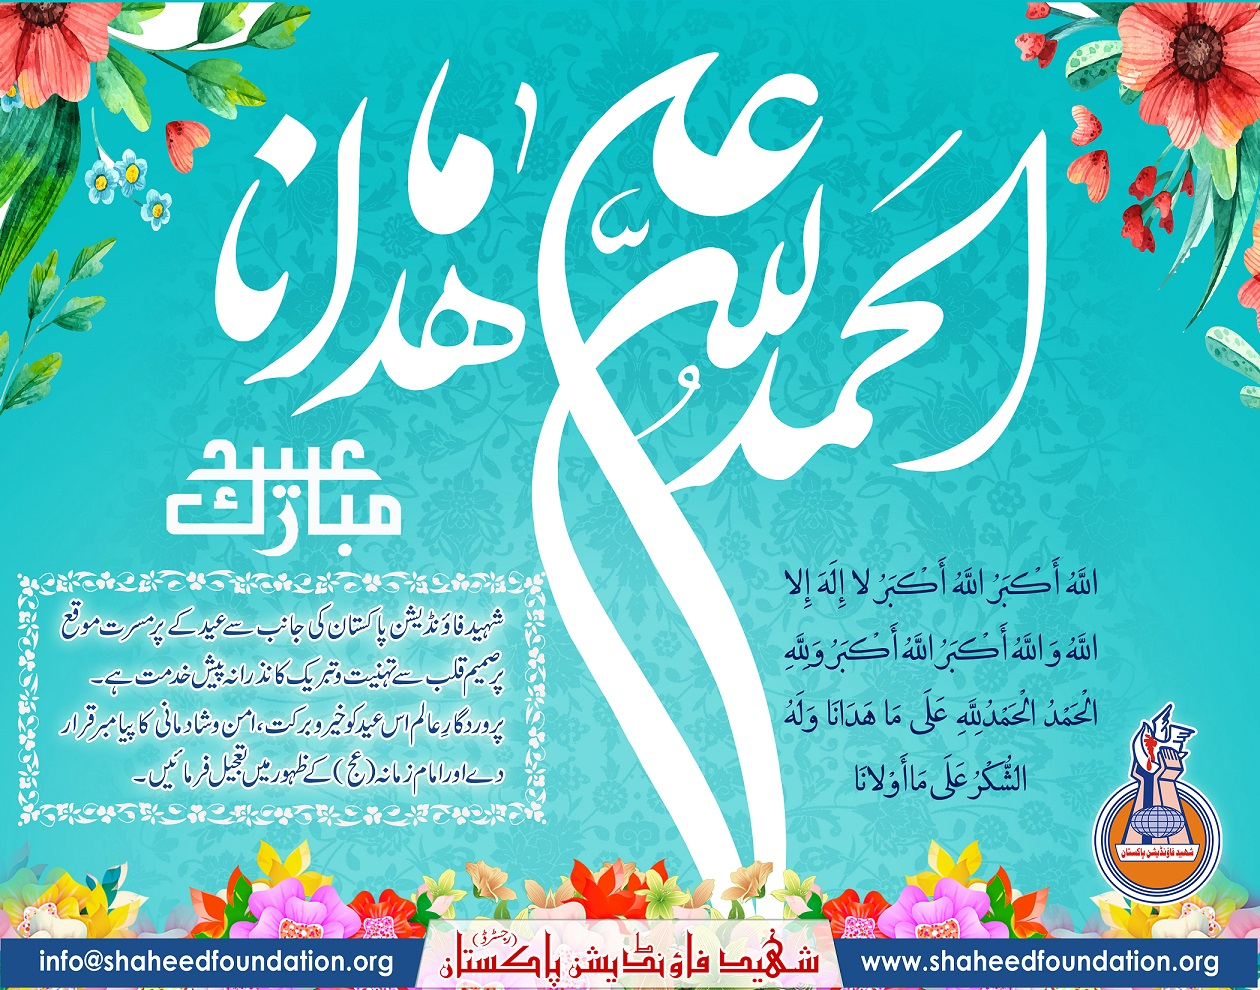 1st Shawwal: Heartiest Felicitations on the Blessed Occassion of Eid-ul-Fitr